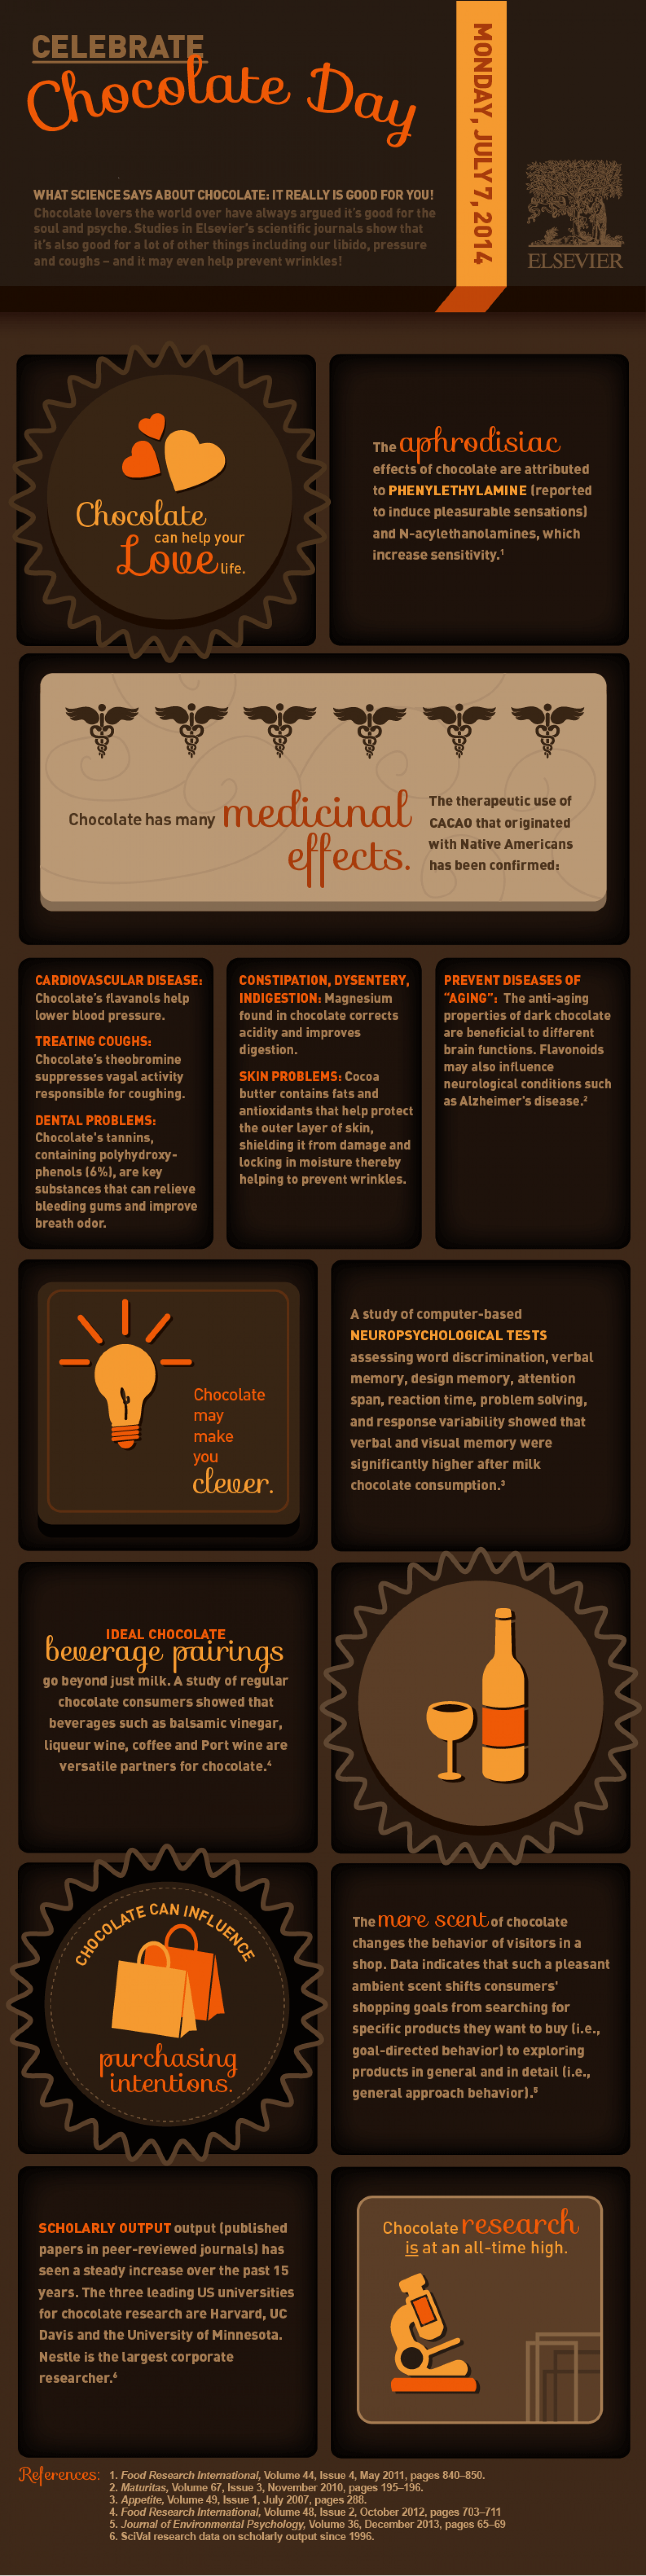 Celebrate Chocolate Day  Infographic